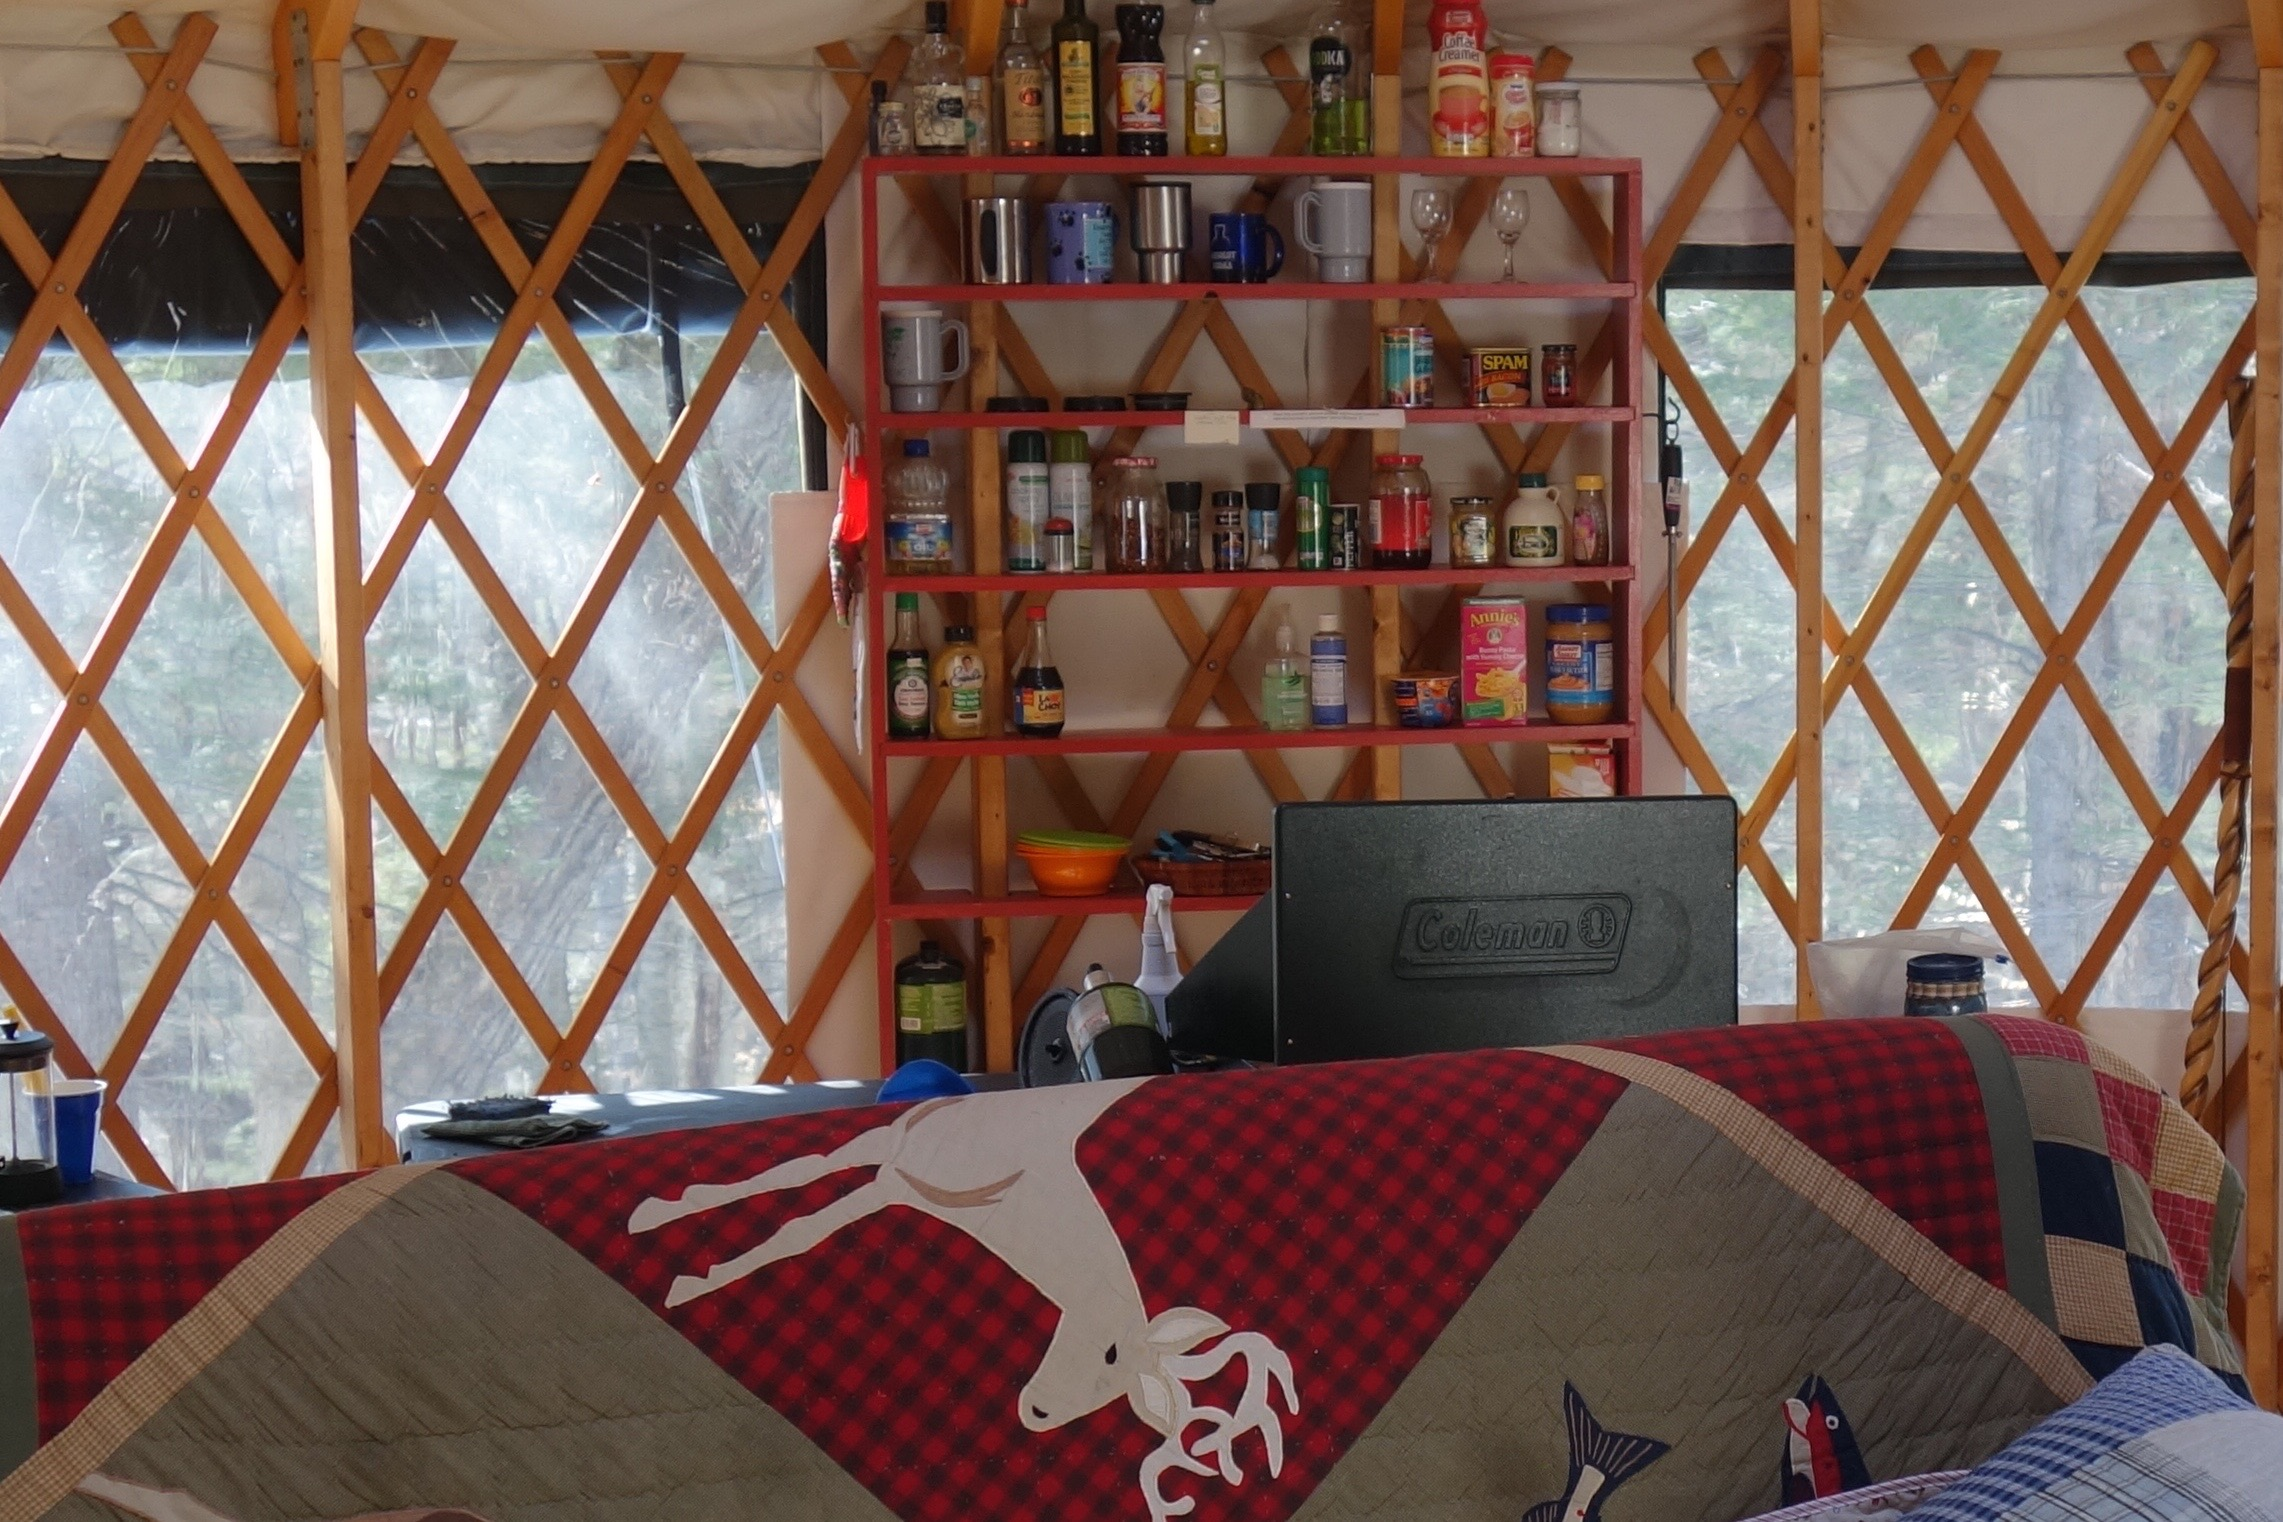 Click image for larger version  Name:Yurt shelving or mice playhouse.jpg Views:16 Size:883.4 KB ID:998